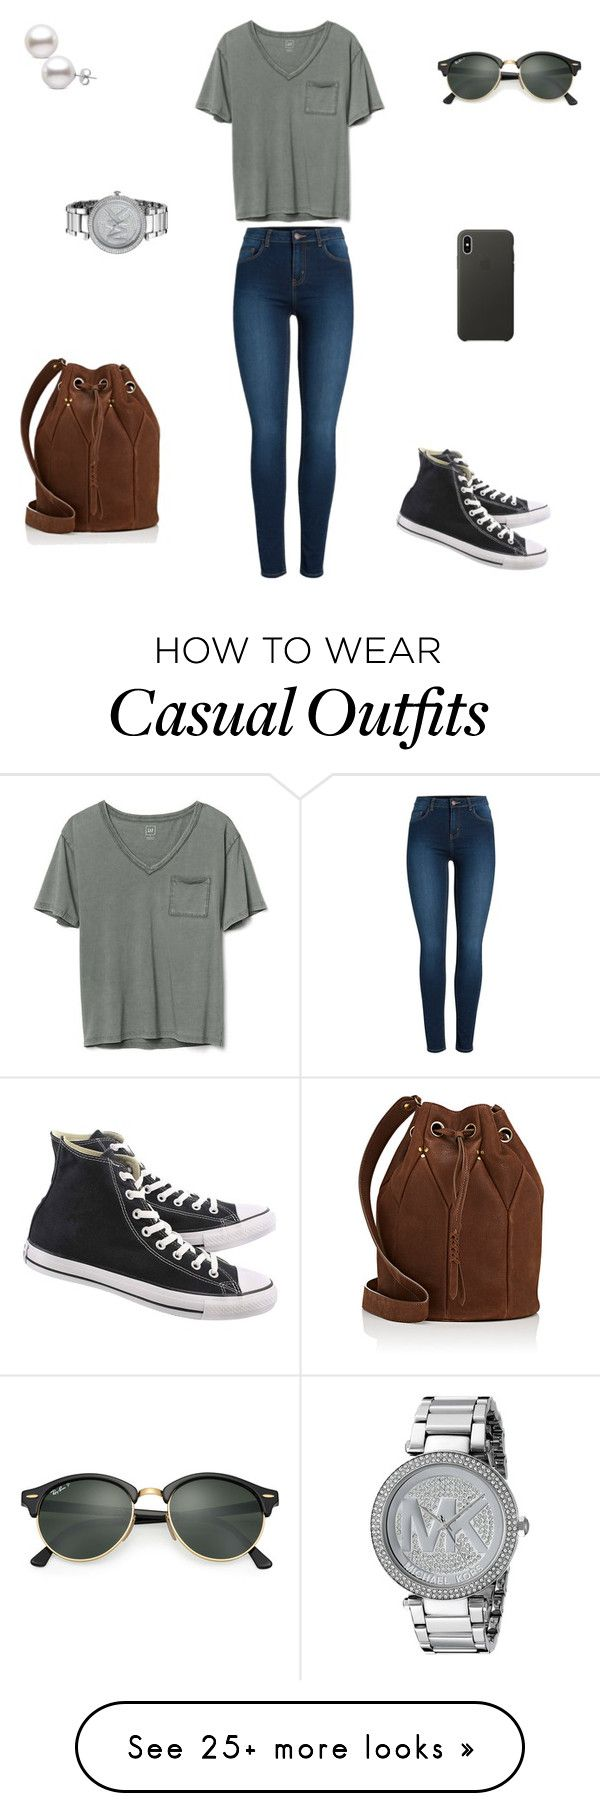 """Lately Casual"" by christy-wade-1 on Polyvore featuring Pieces, Gap, Converse, Ray-Ban, Michael Kors, Jérôme Dreyfuss and Apple"